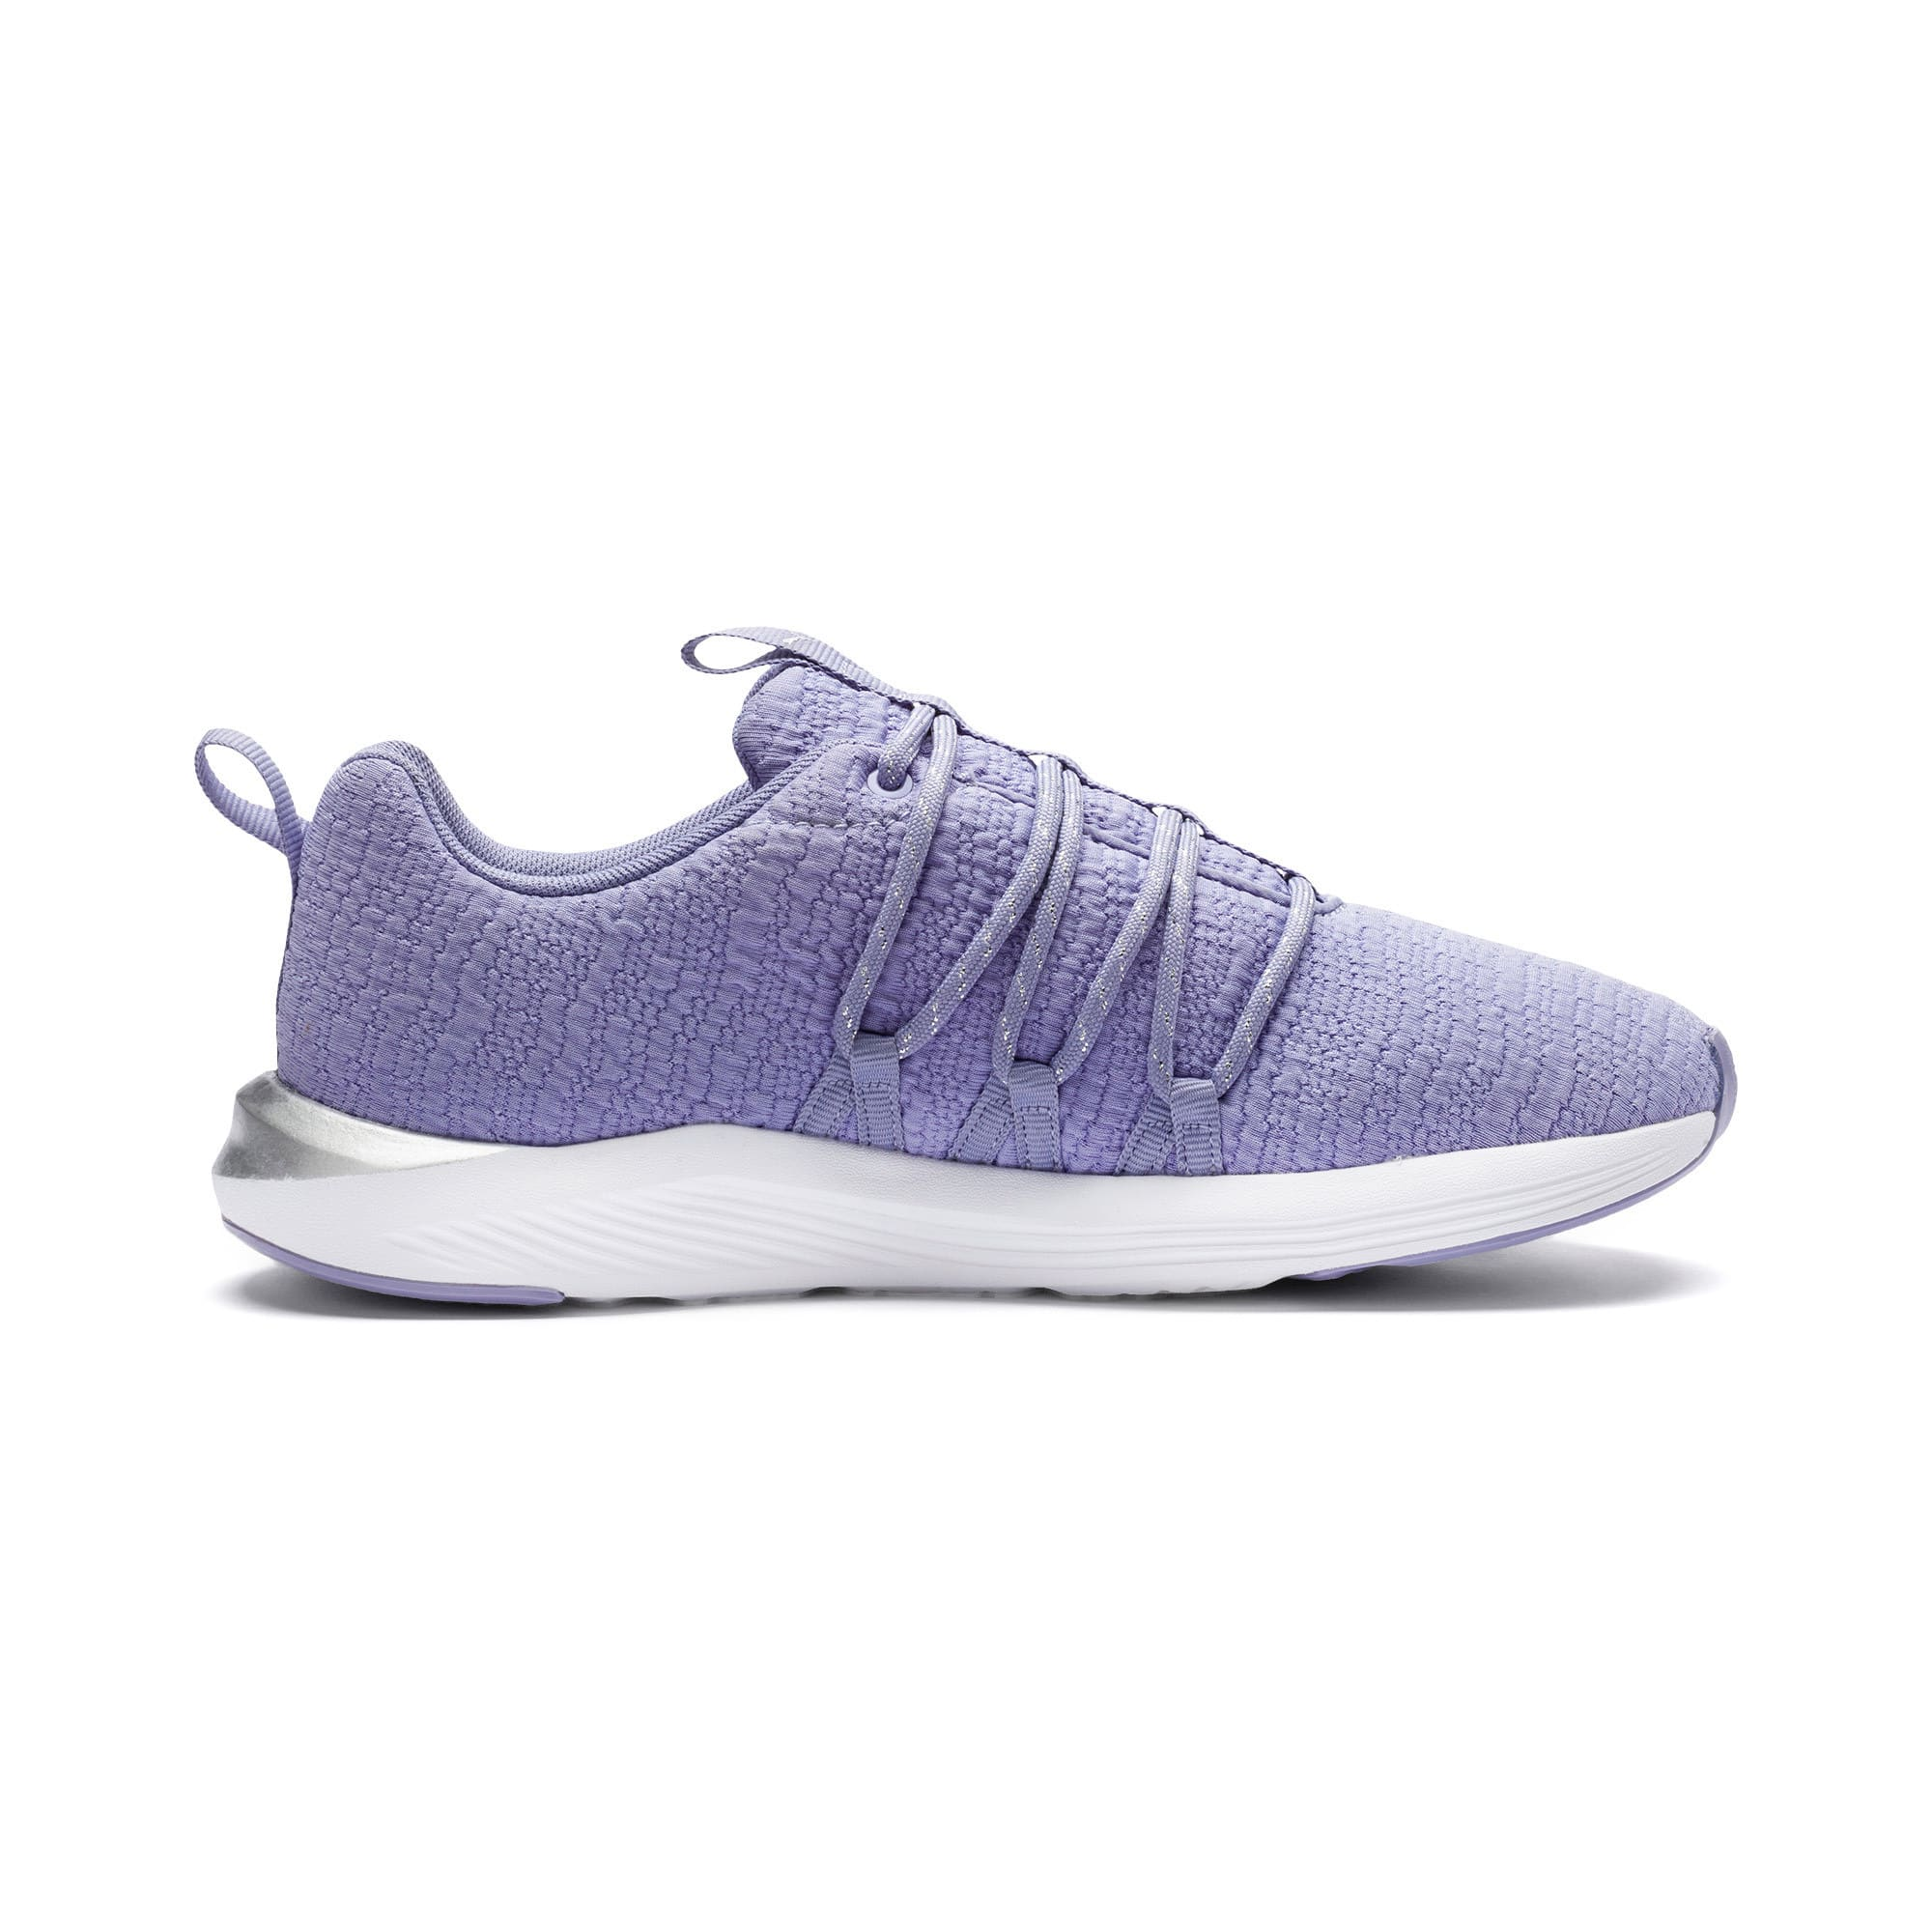 Thumbnail 5 of Prowl Alt Metallic Women's Training Shoes, Sweet Lavender-Puma White, medium